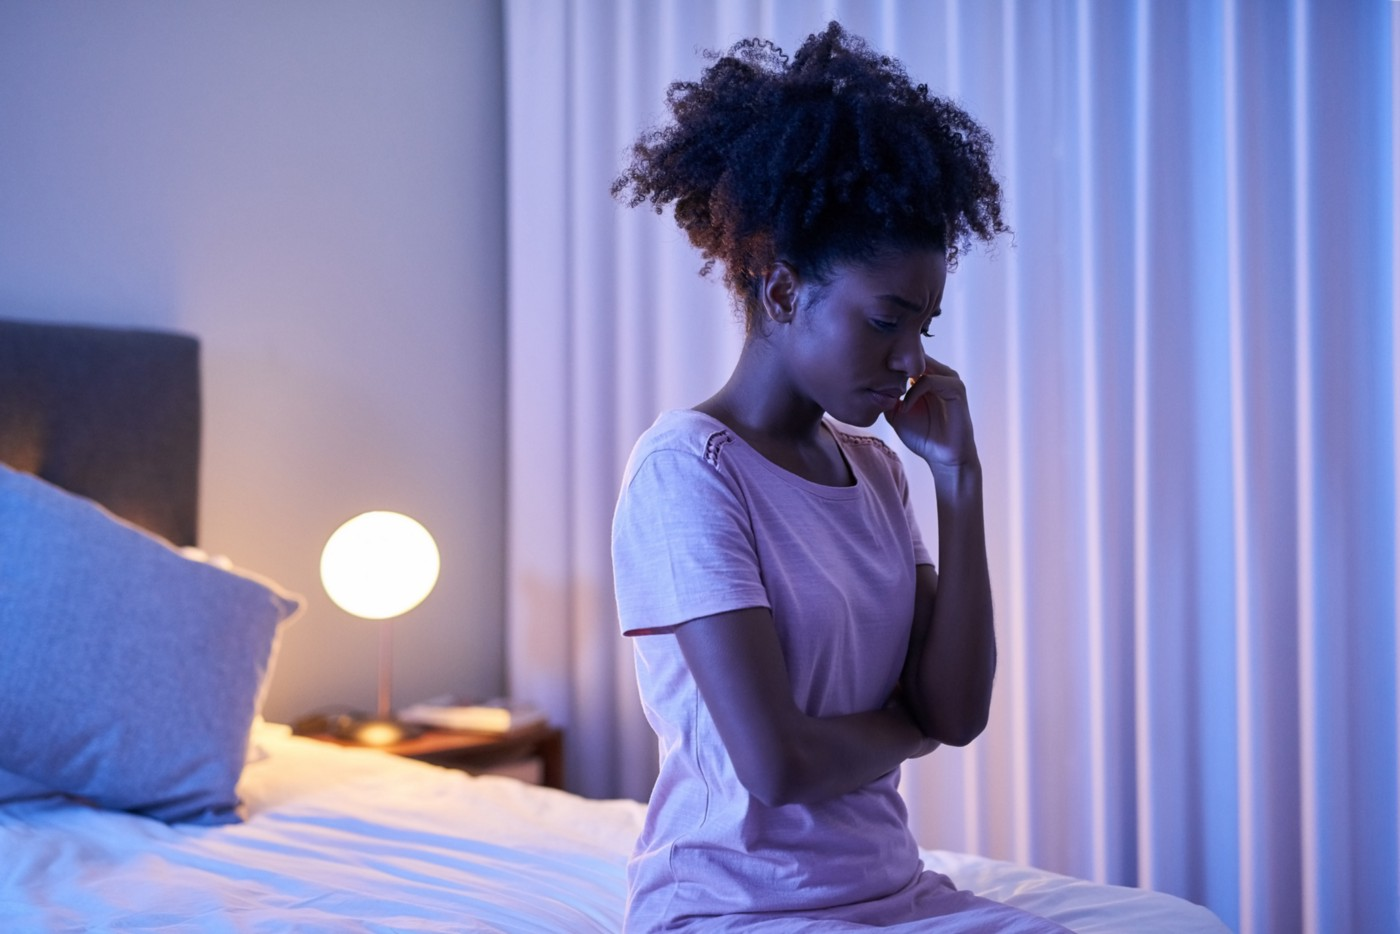 A troubled black woman sits at the edge of her bed.